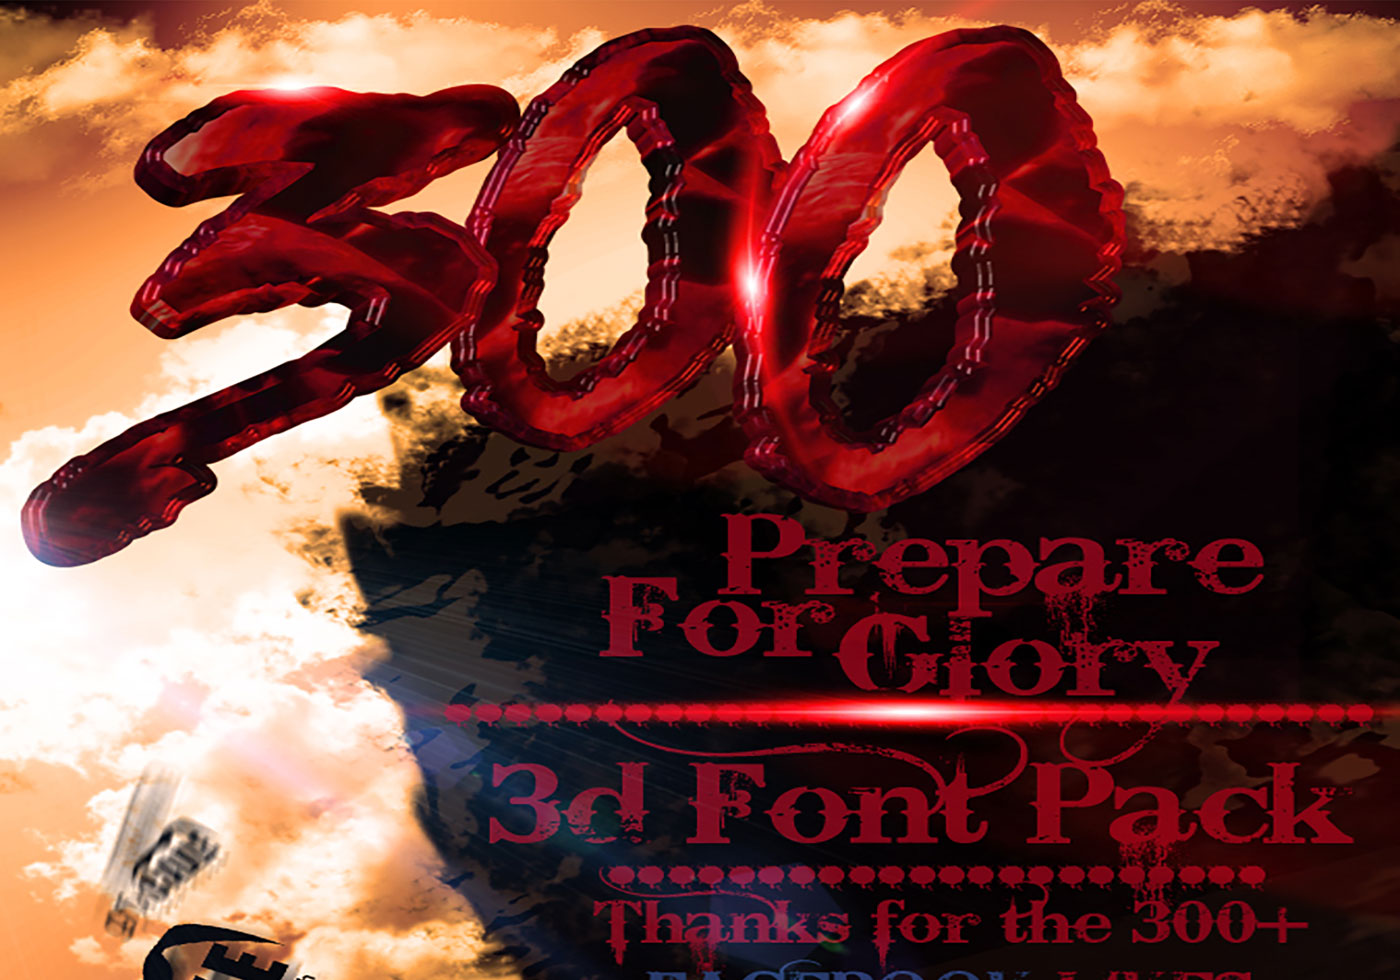 300 The movie Inspired 3d Font - 235.7KB